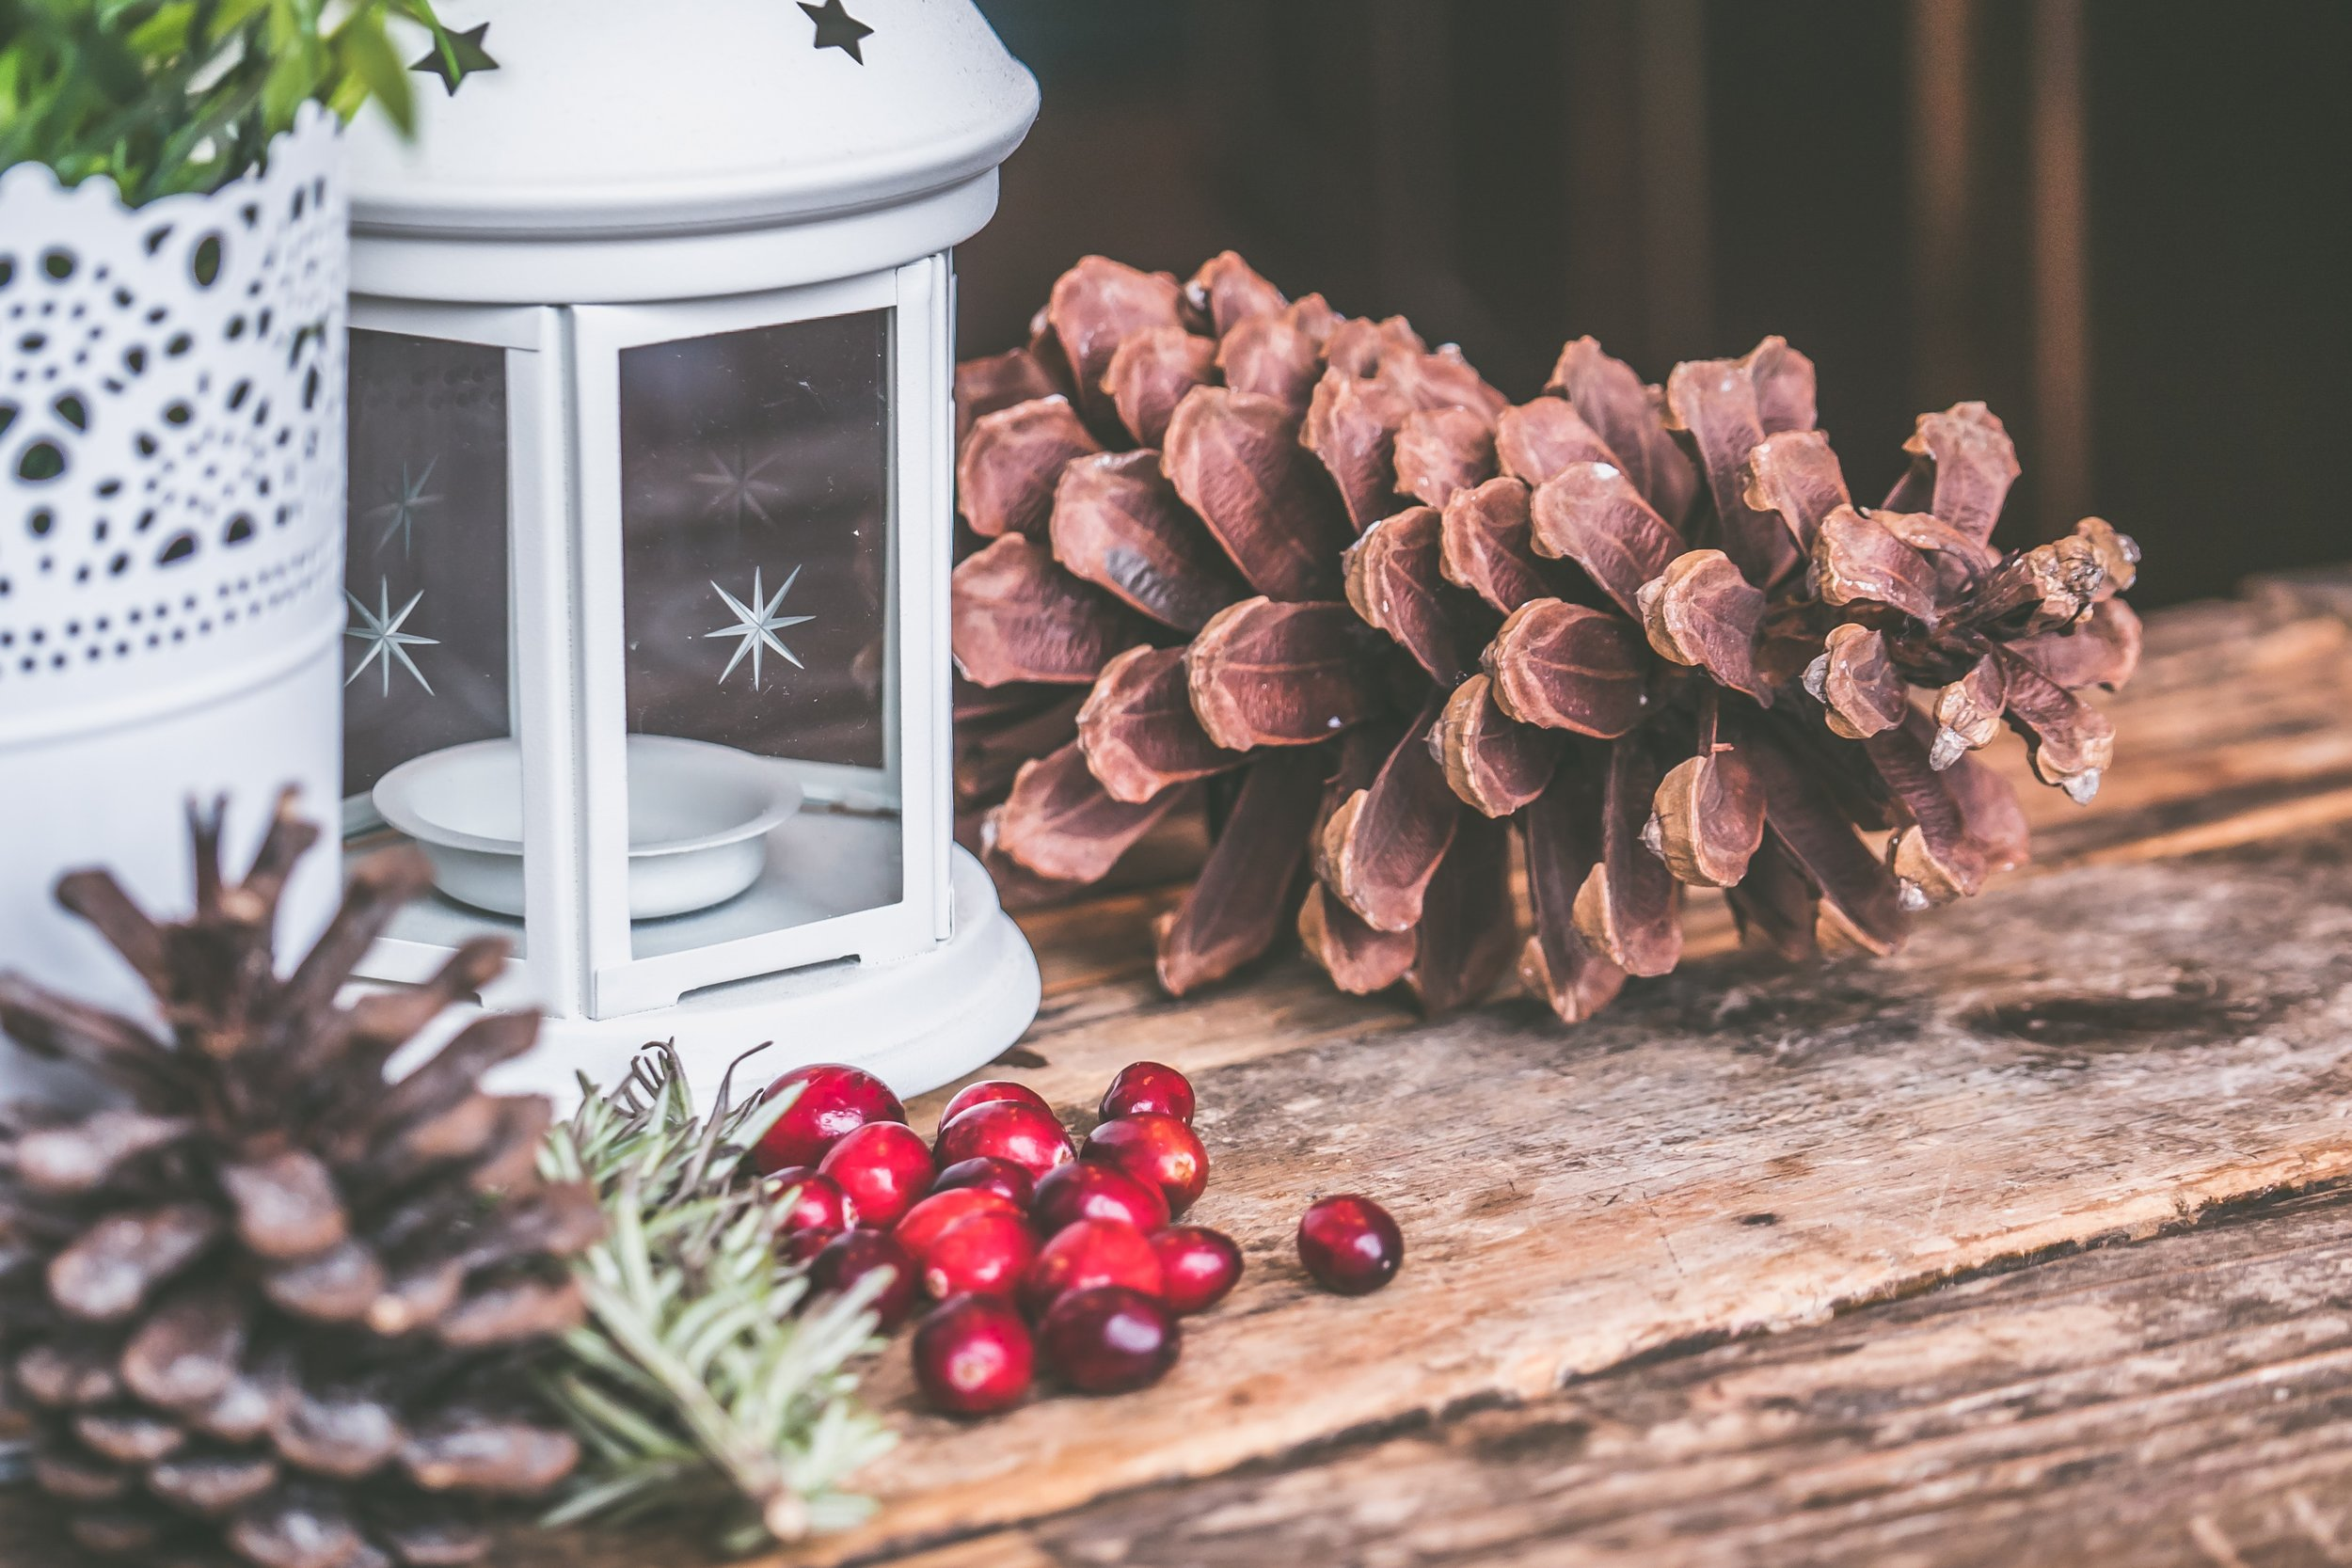 Musings on Celebrating the Winter Solstice in the Midst of Holiday Hubbub